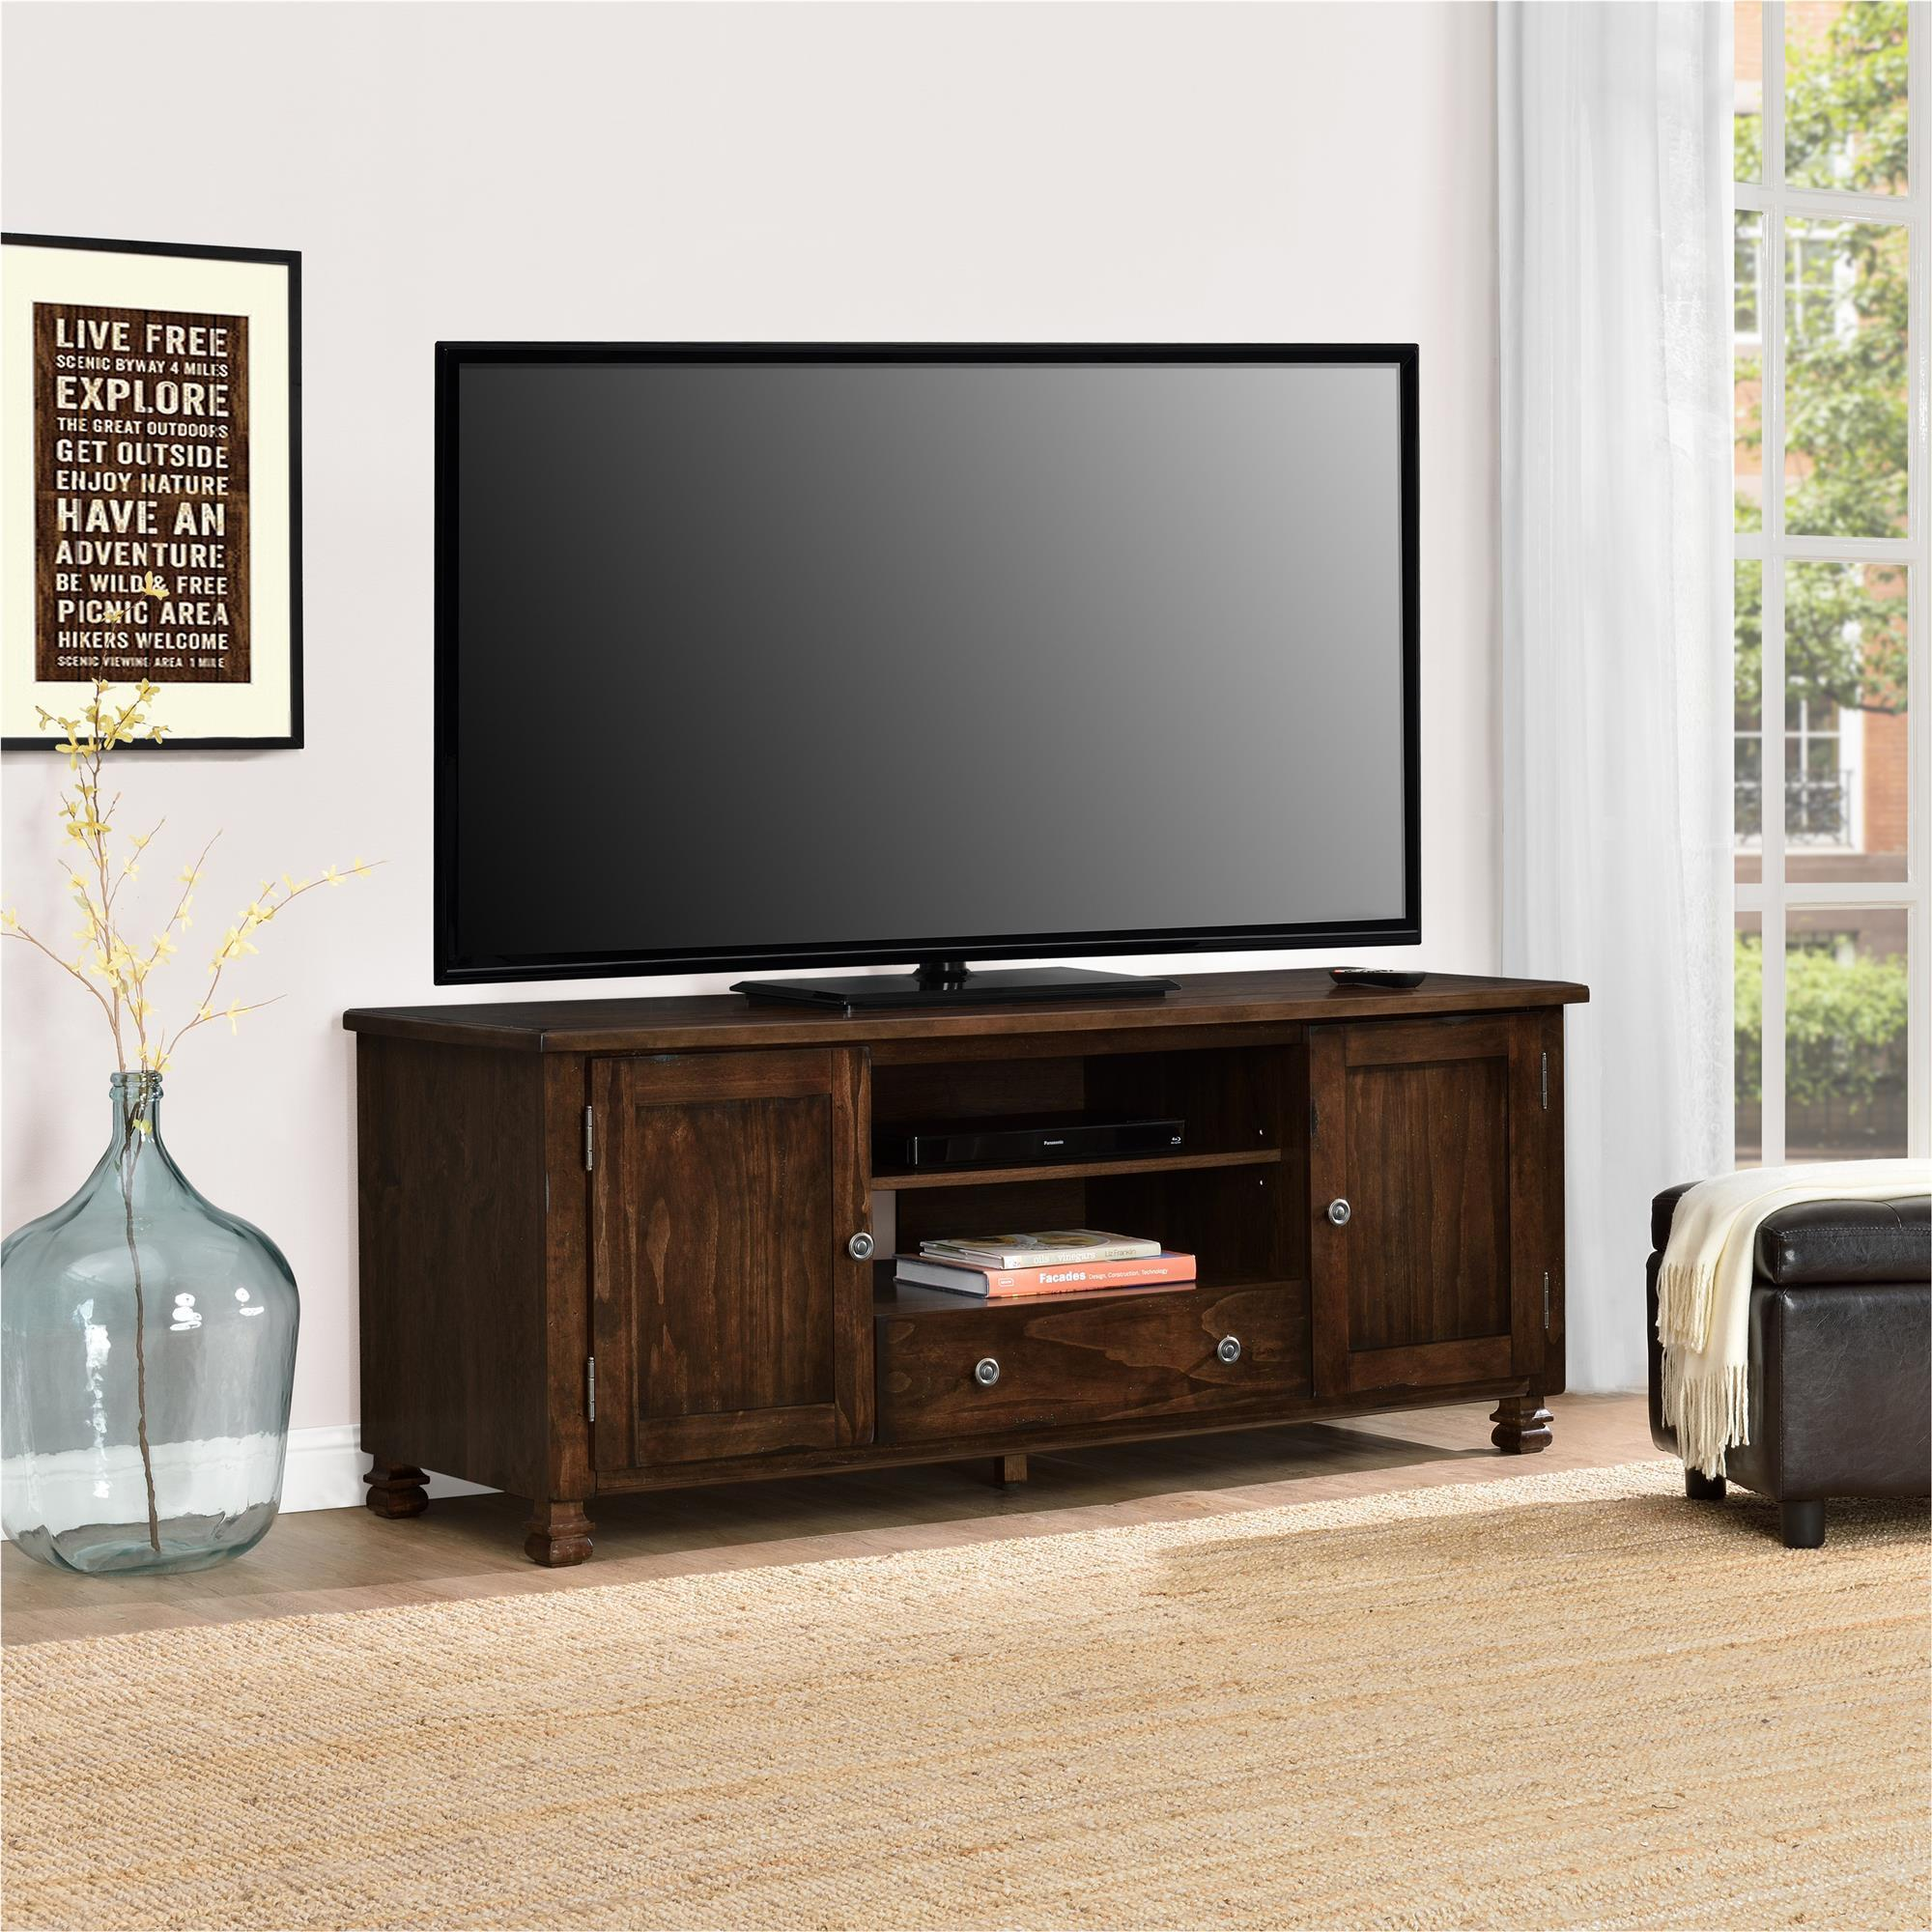 Ameriwood Home San Antonio Wood Veneer TV Stand Free Shipping